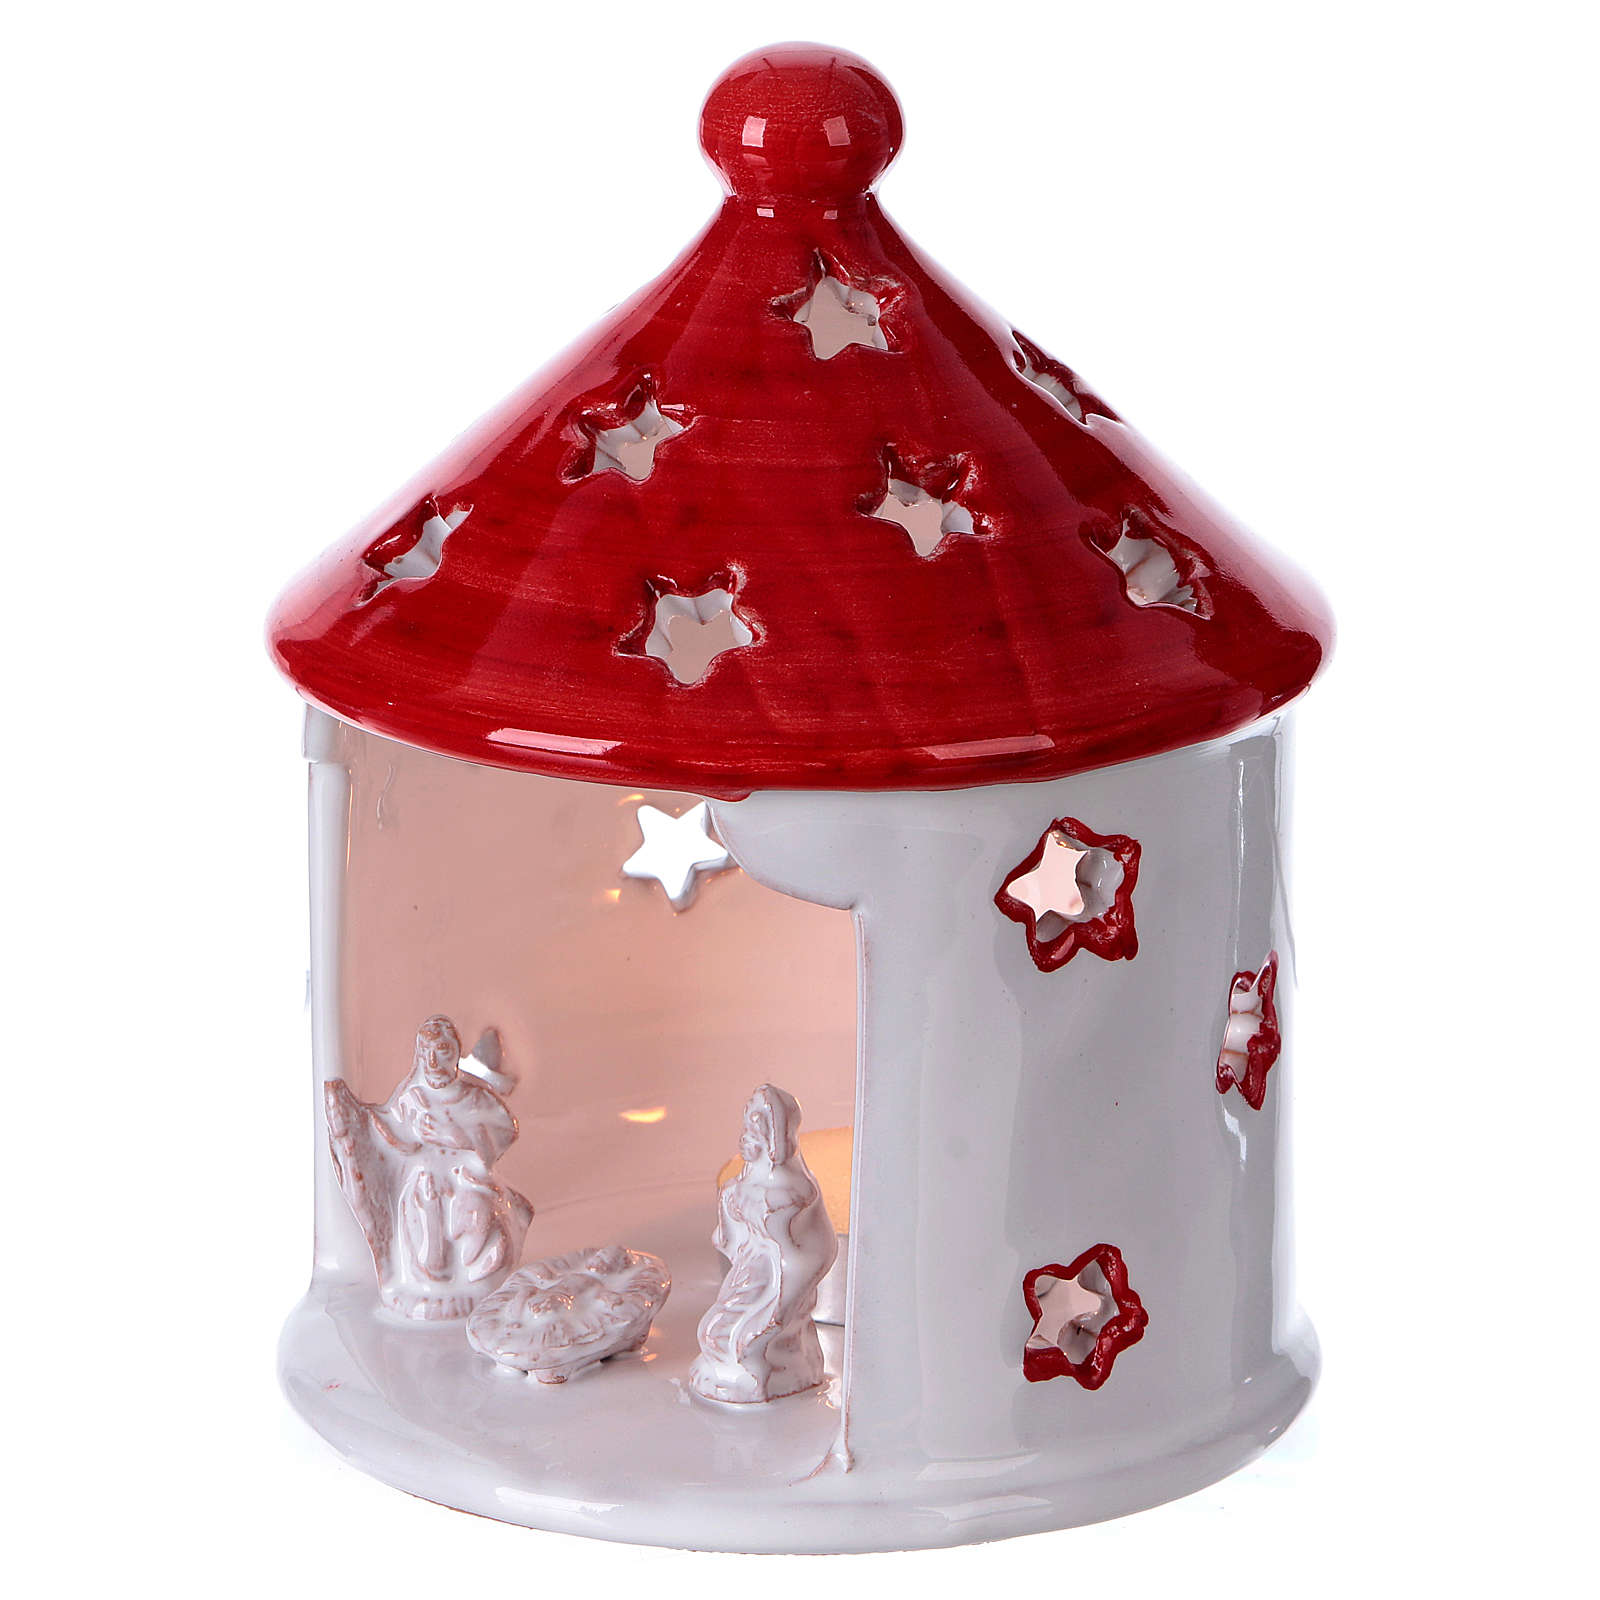 Shack with Nativity in Deruta terracotta, shiny white and red 4